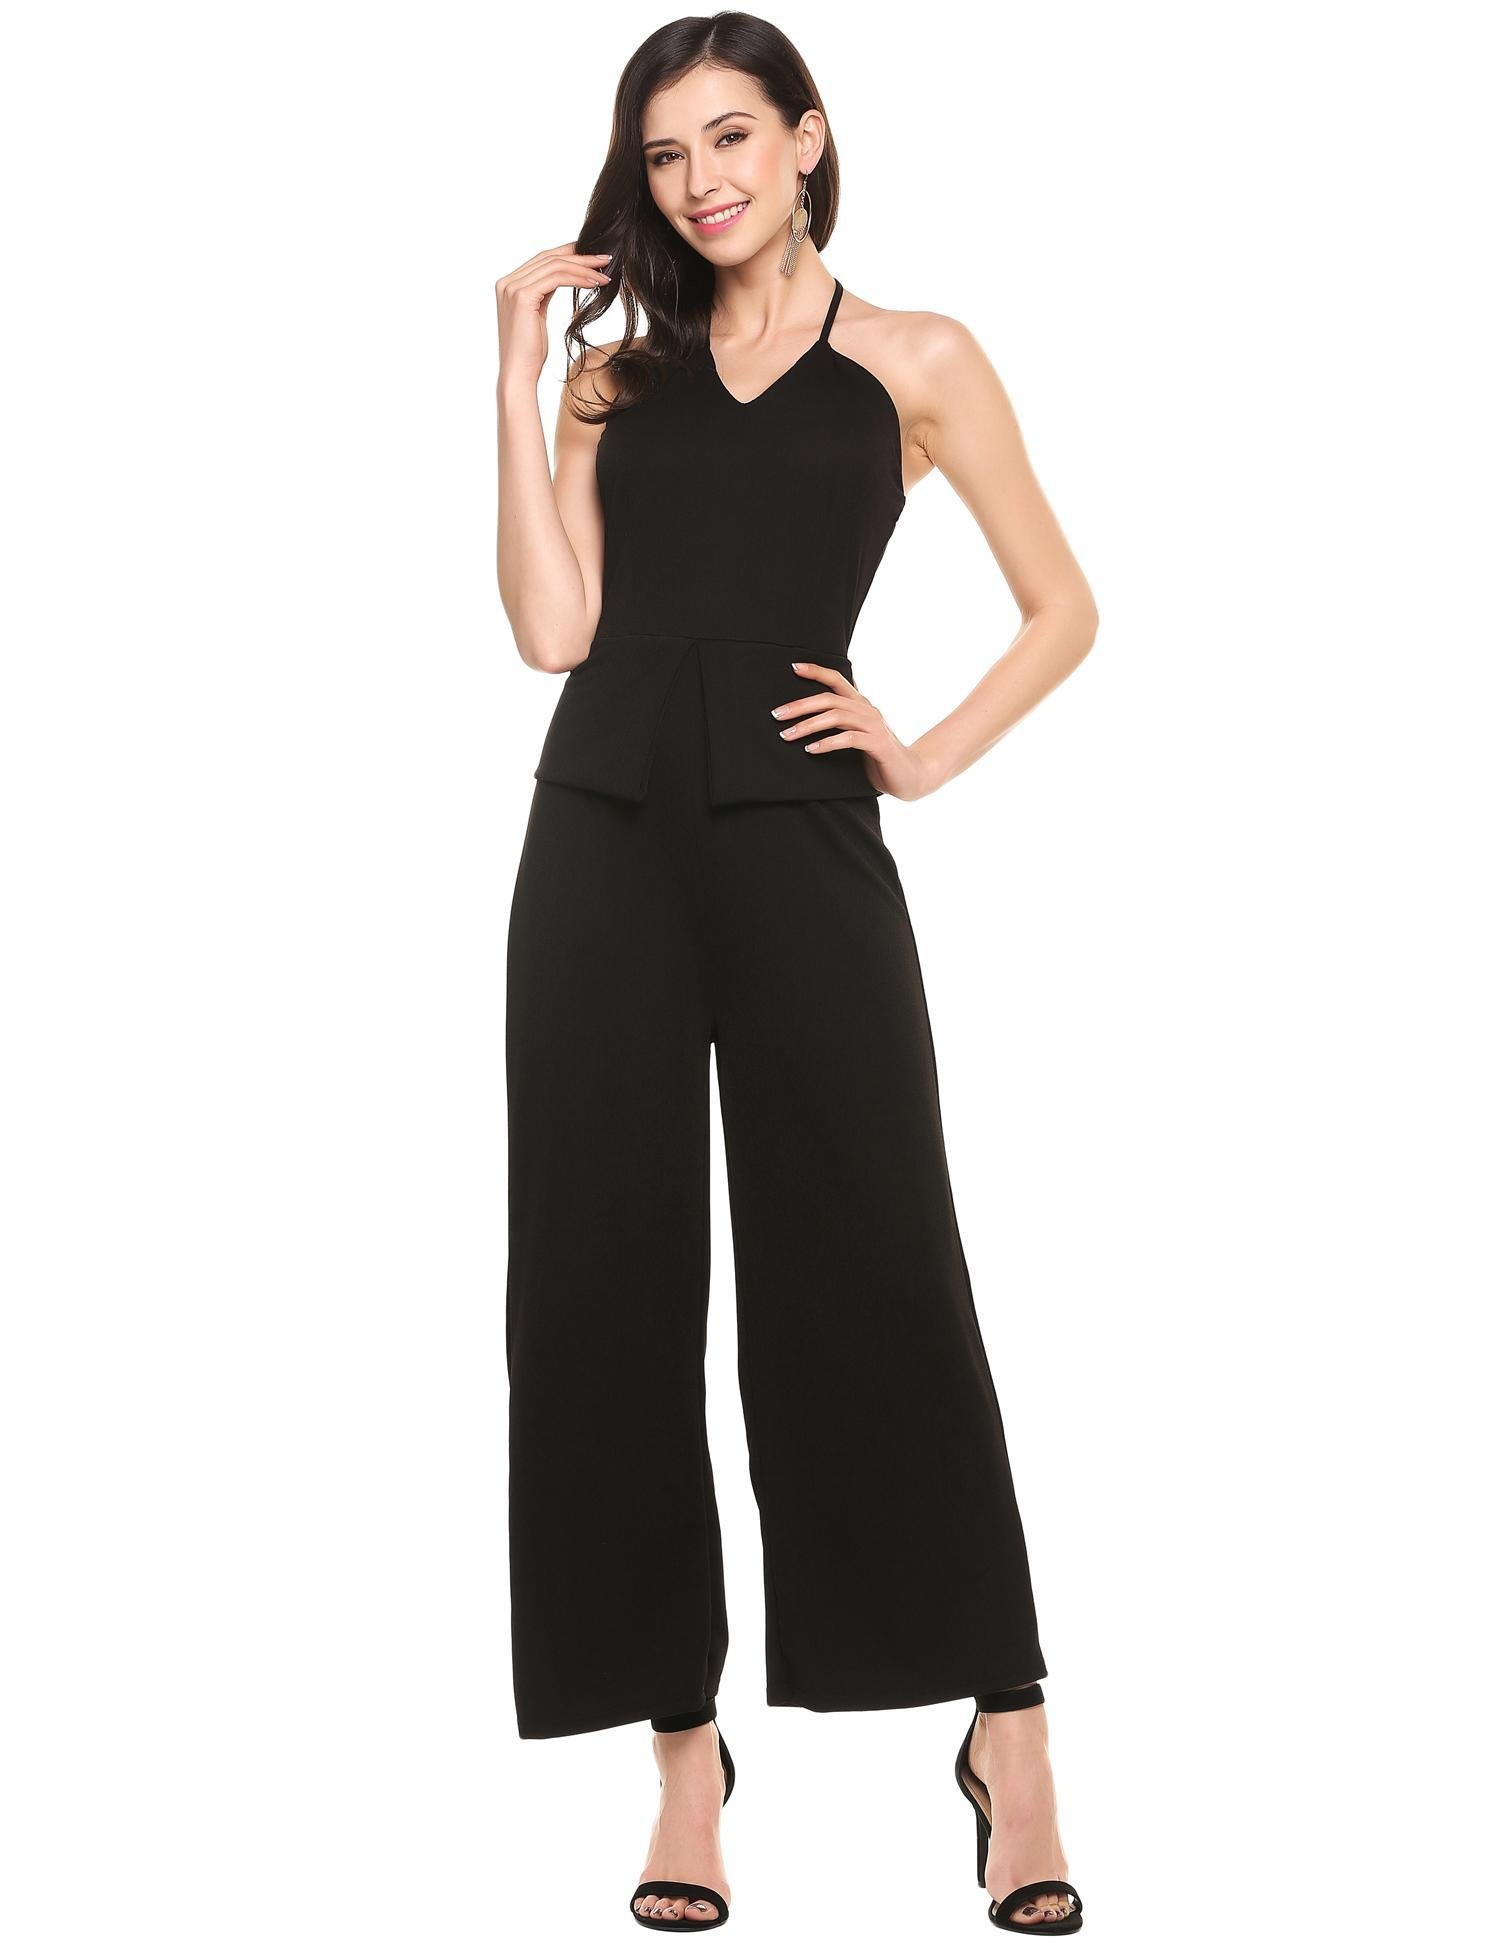 ANGVNS Women's Sleeveless V Neck Long Loose Jumpsuits Rompers Overall Wide Leg Pants